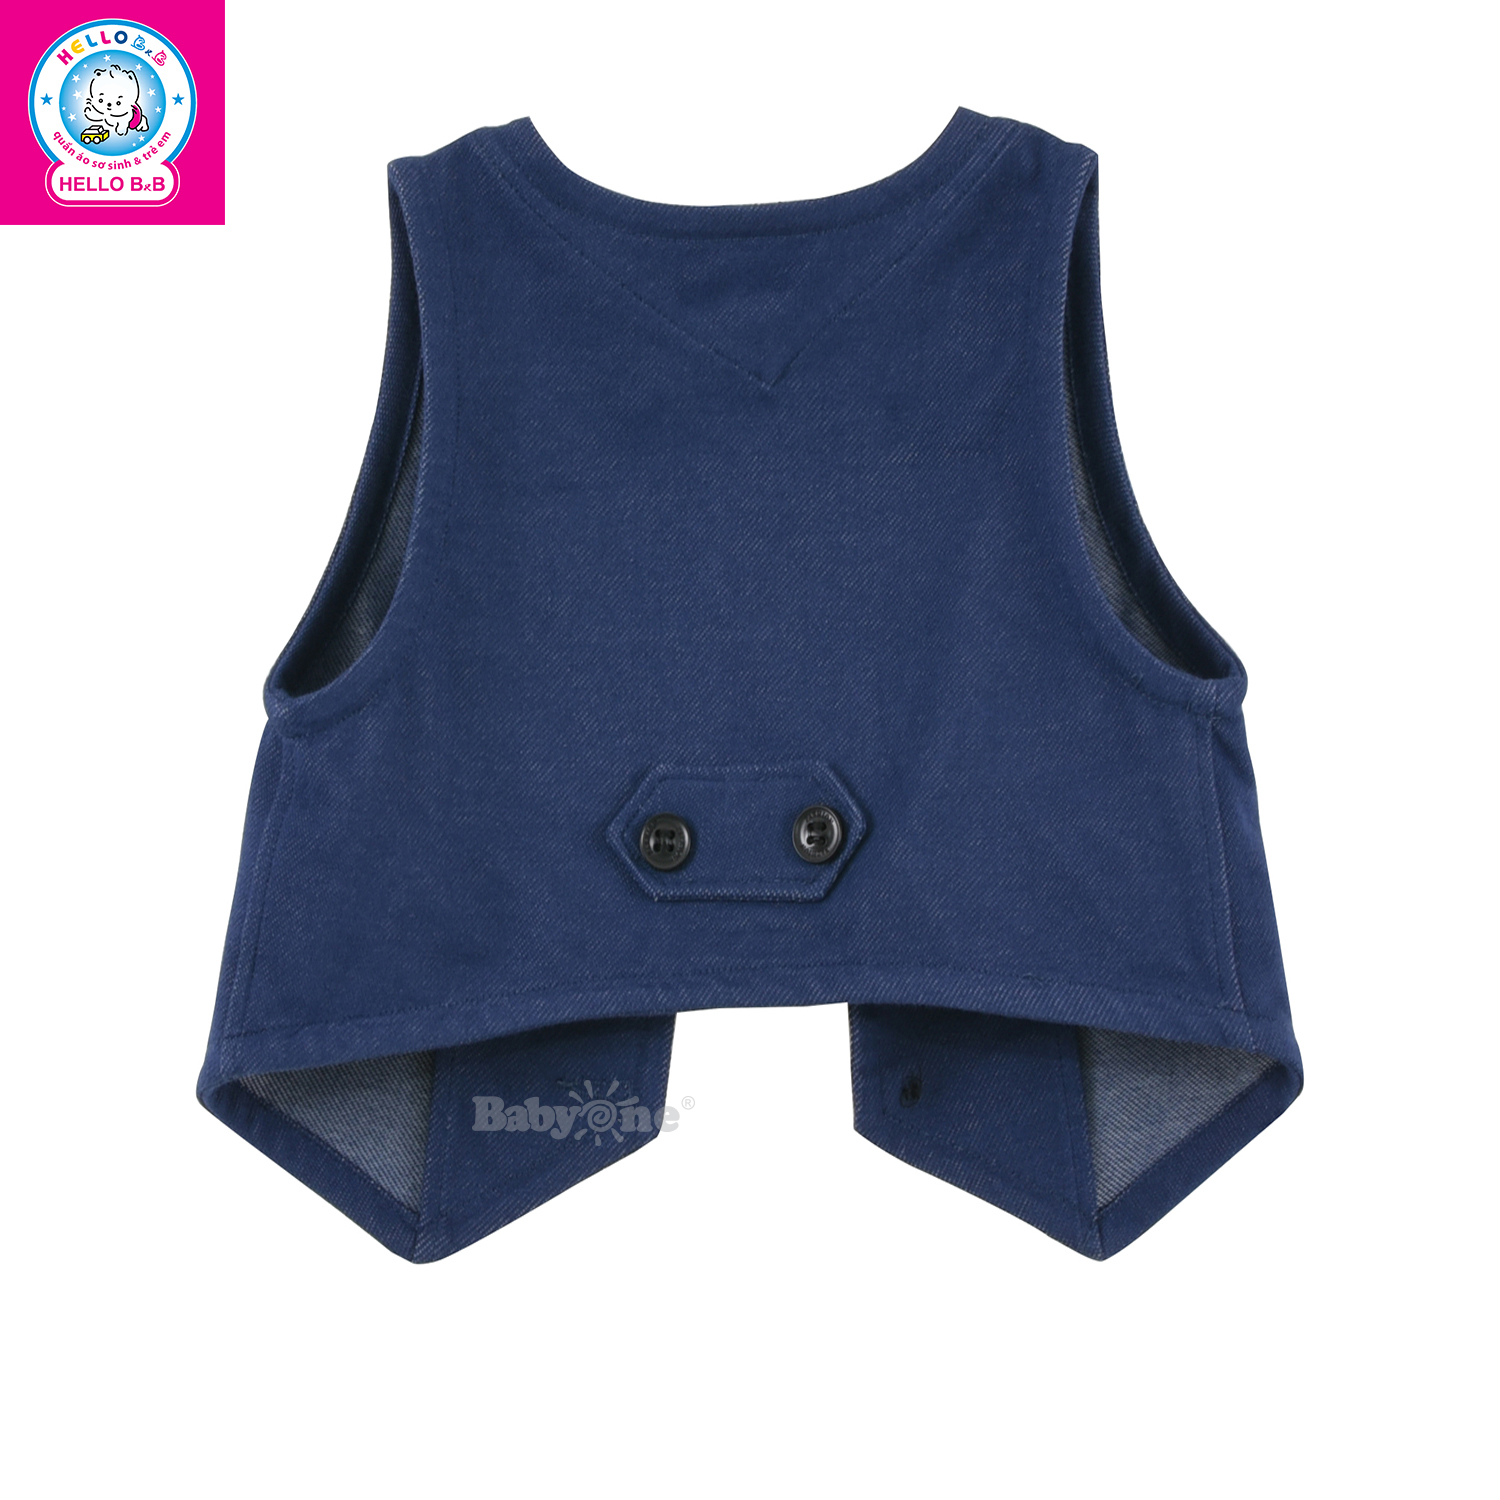 Vest Ghile 1178